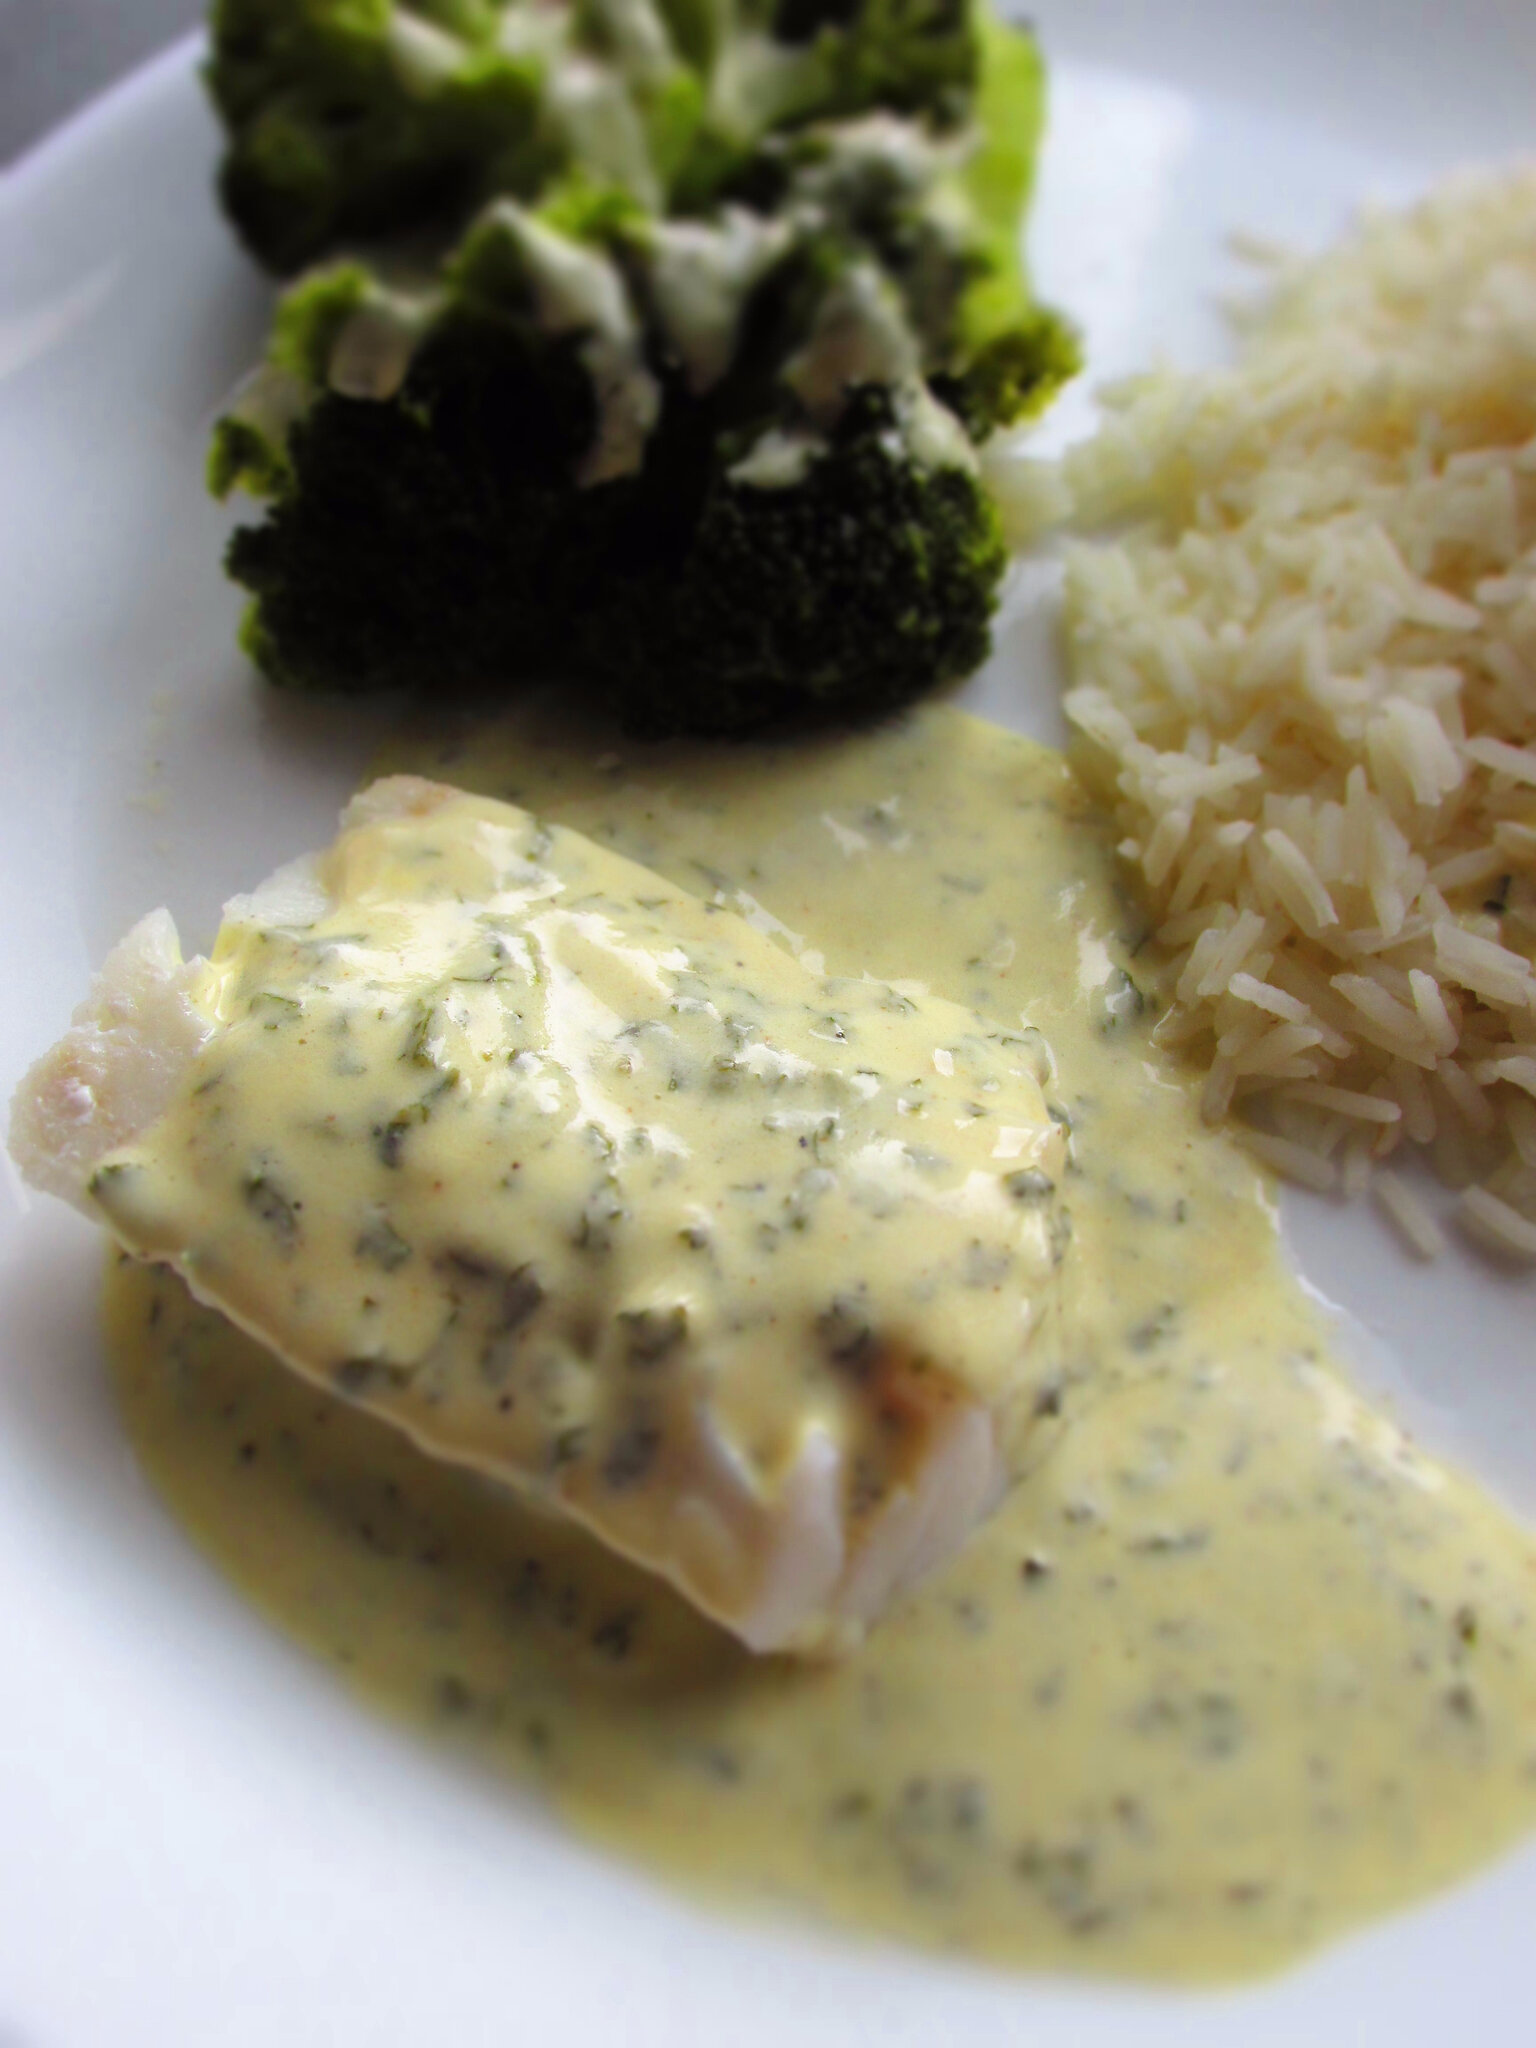 Sauce Pour Accompagner Le Riz : sauce, accompagner, Sauce, Citron, Herbes, Accompagner, Poisson..., Chat-Touille